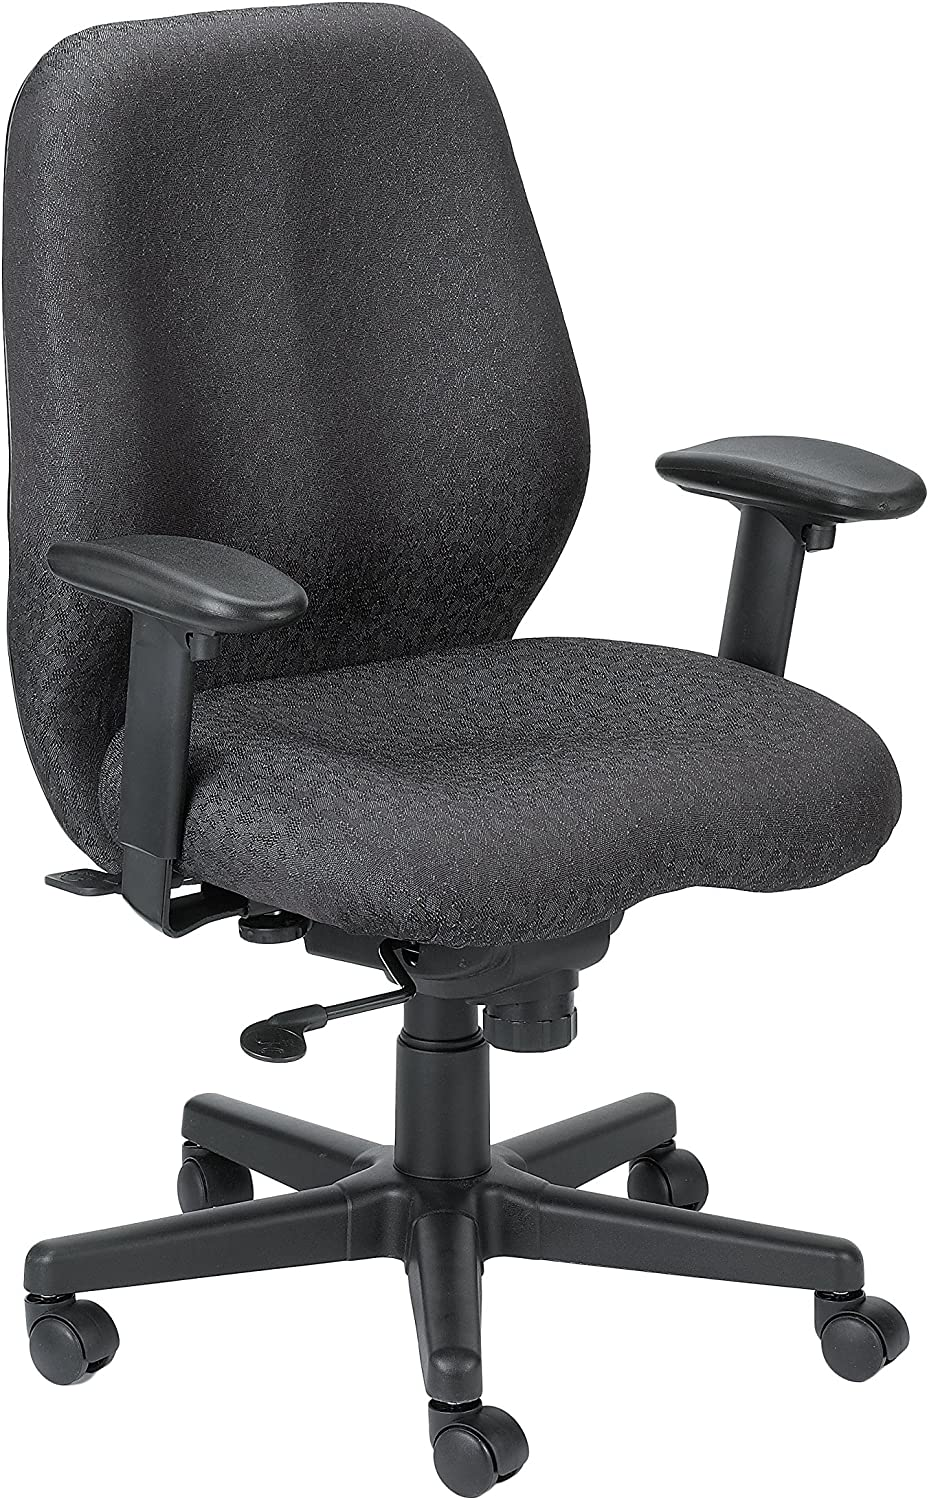 Eurotech Seating Aviator Swivel Tilt Chair, Charcoal